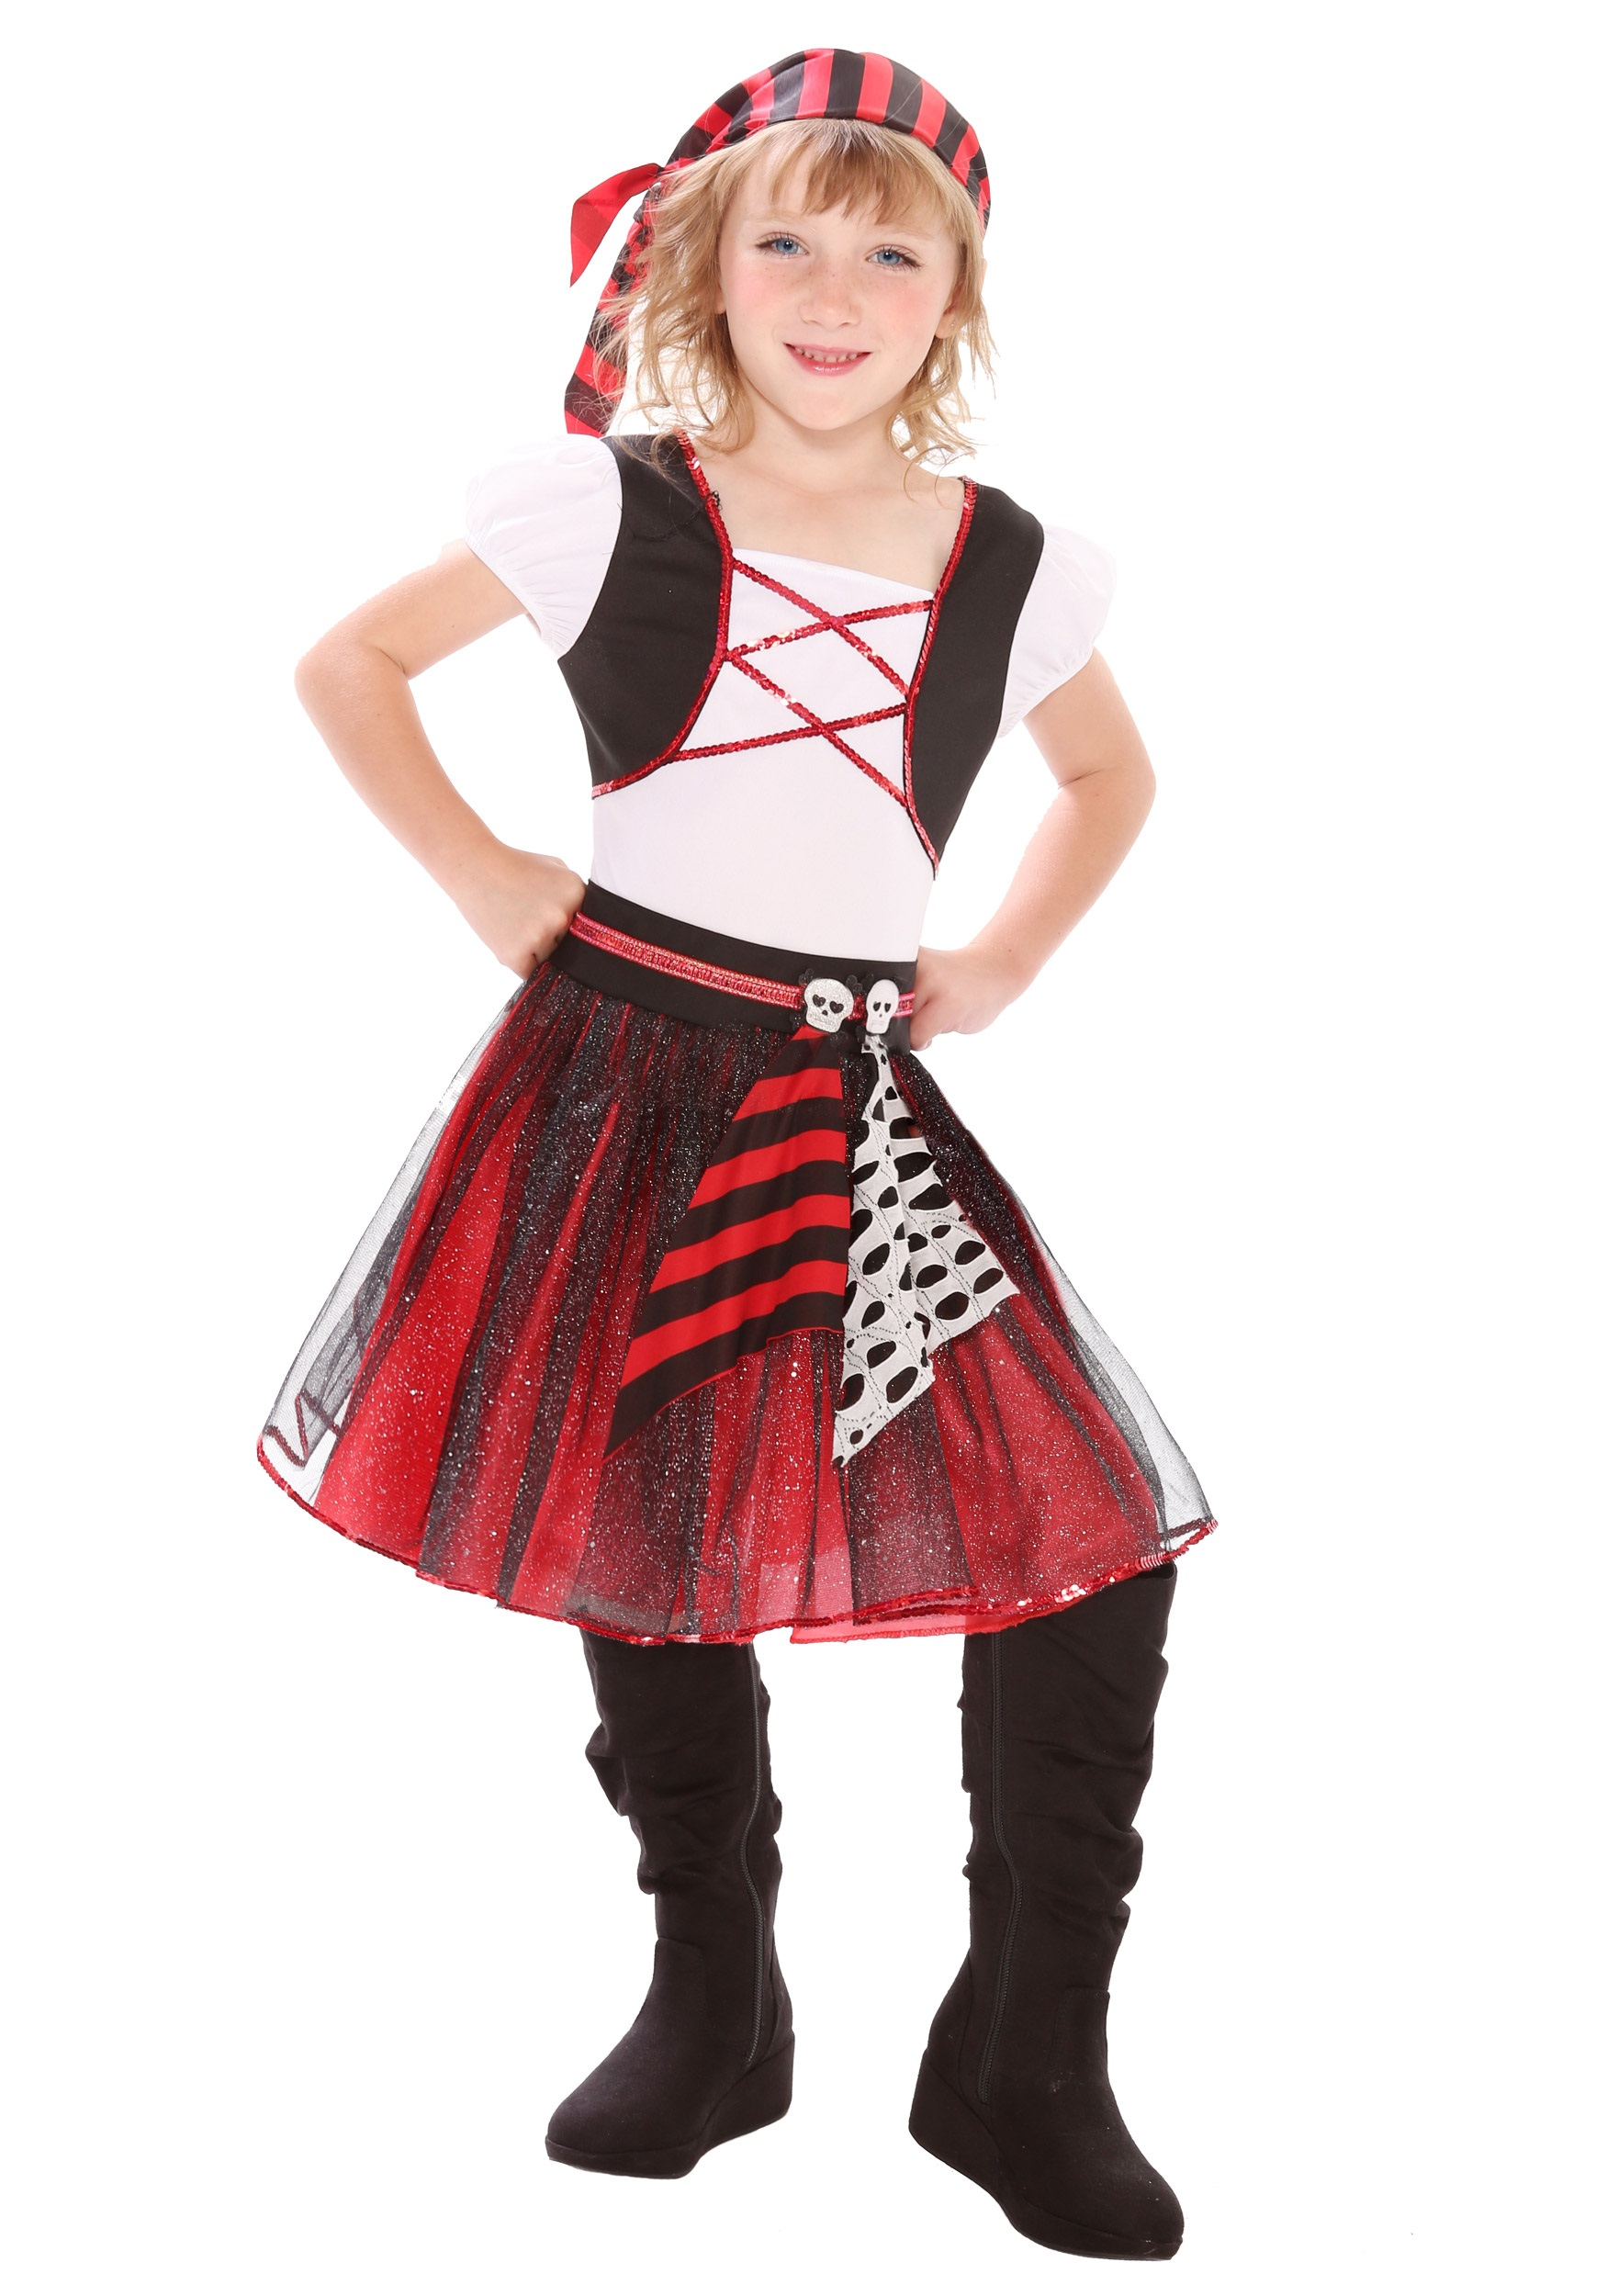 Girls Punky Pirate Costume  sc 1 st  Halloween Costumes & Girls Punky Pirate Costume - Halloween Costumes